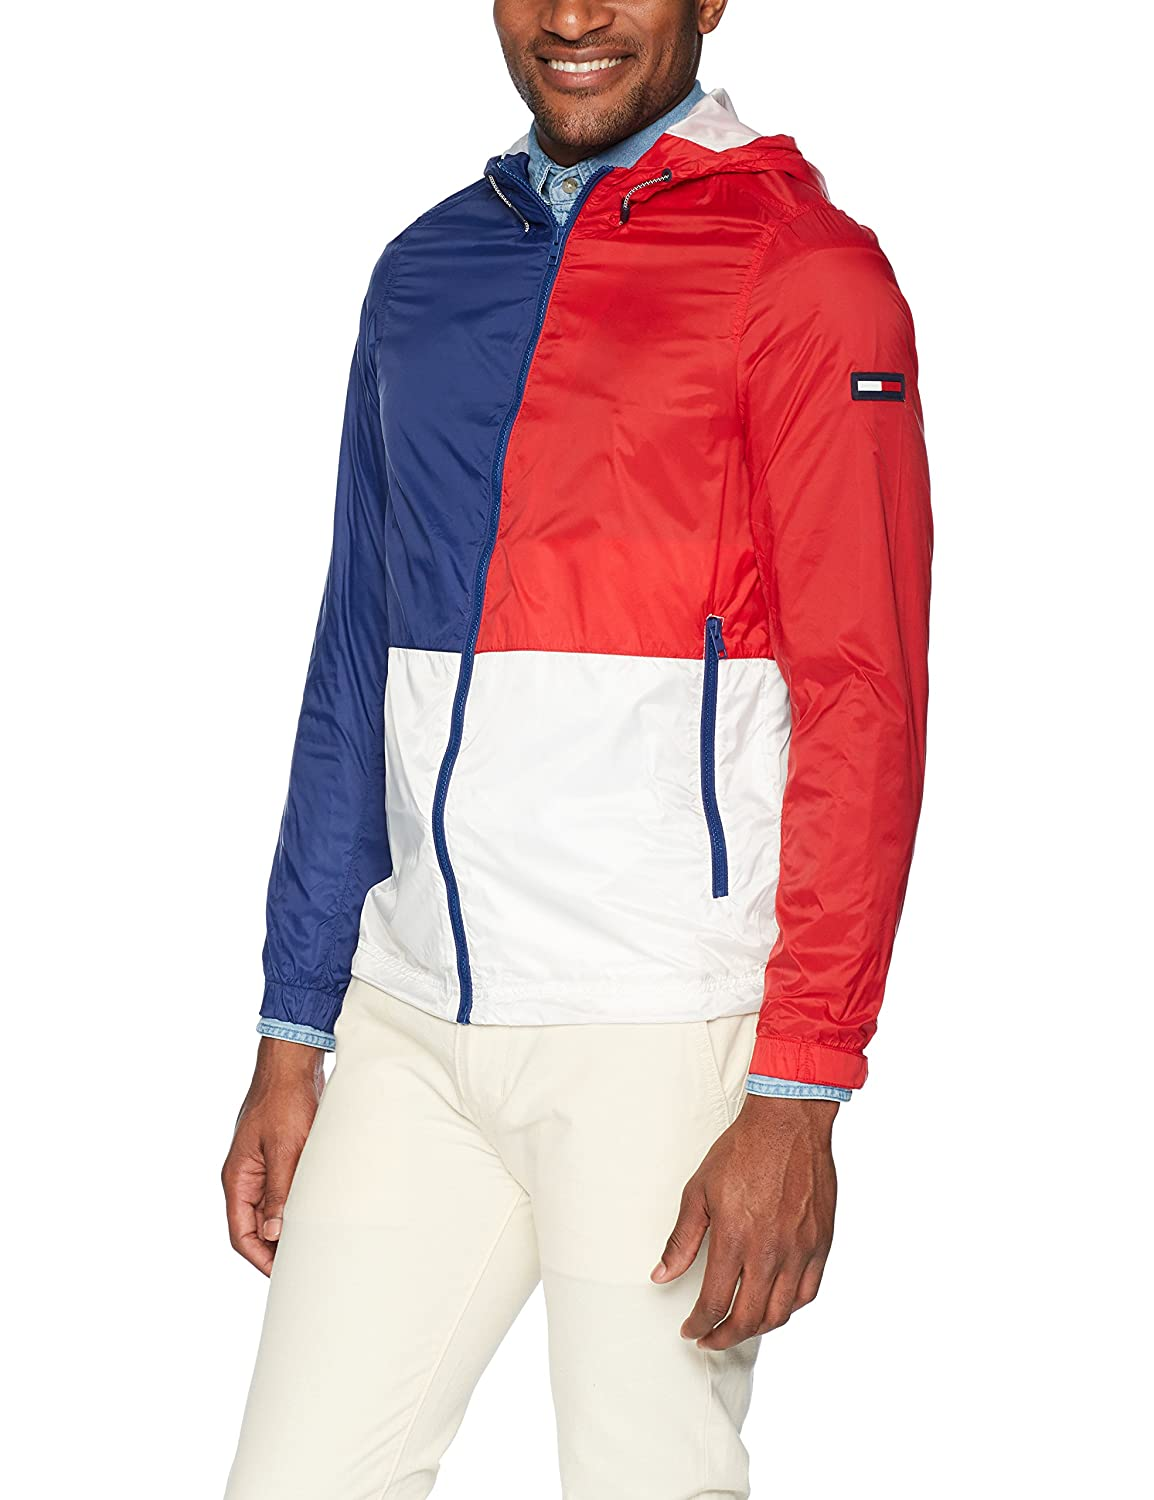 bc685128 Tommy Hilfiger Men's Jacket Lightweight Windbreaker at Amazon Men's  Clothing store: